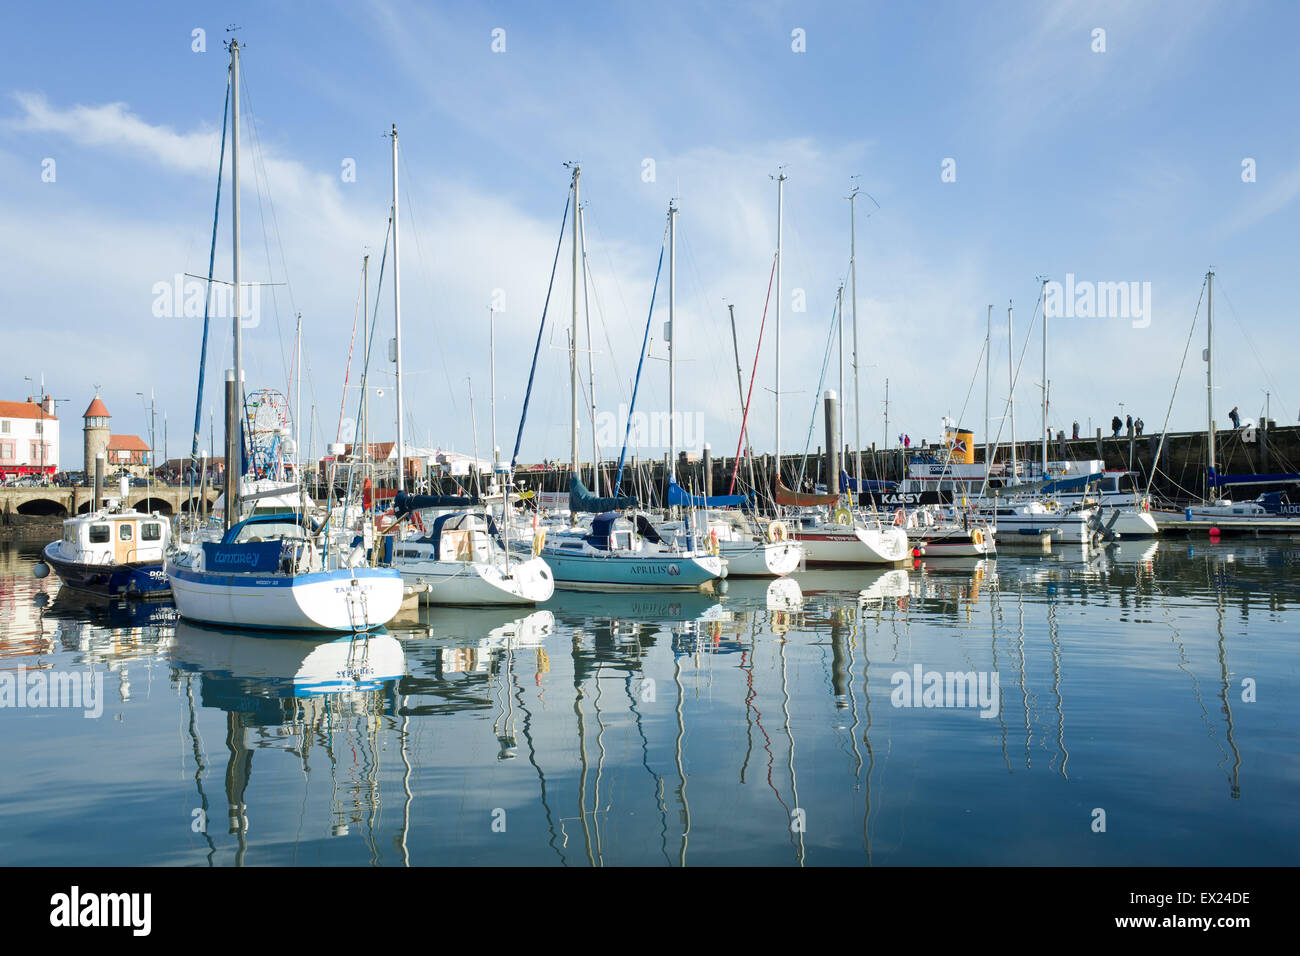 Yachts in Scarborough Harbour UK Stock Photo